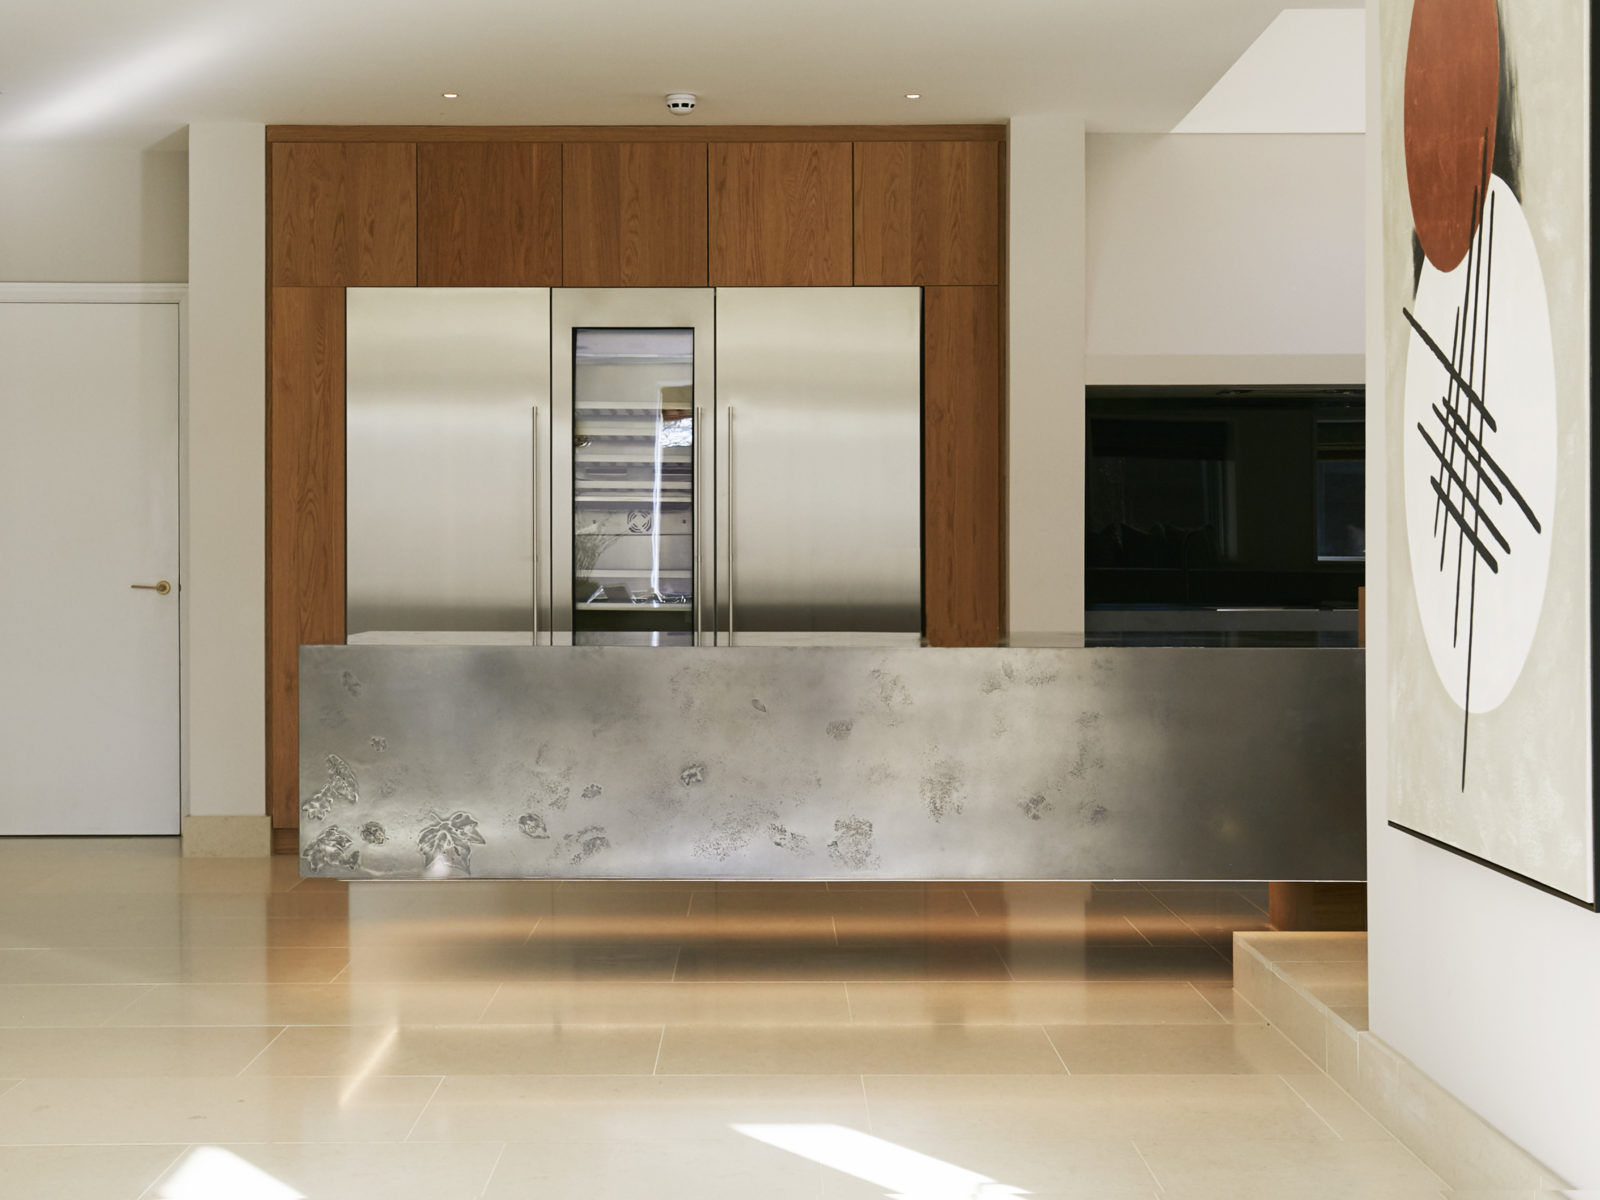 Floating islan with metallic worktop